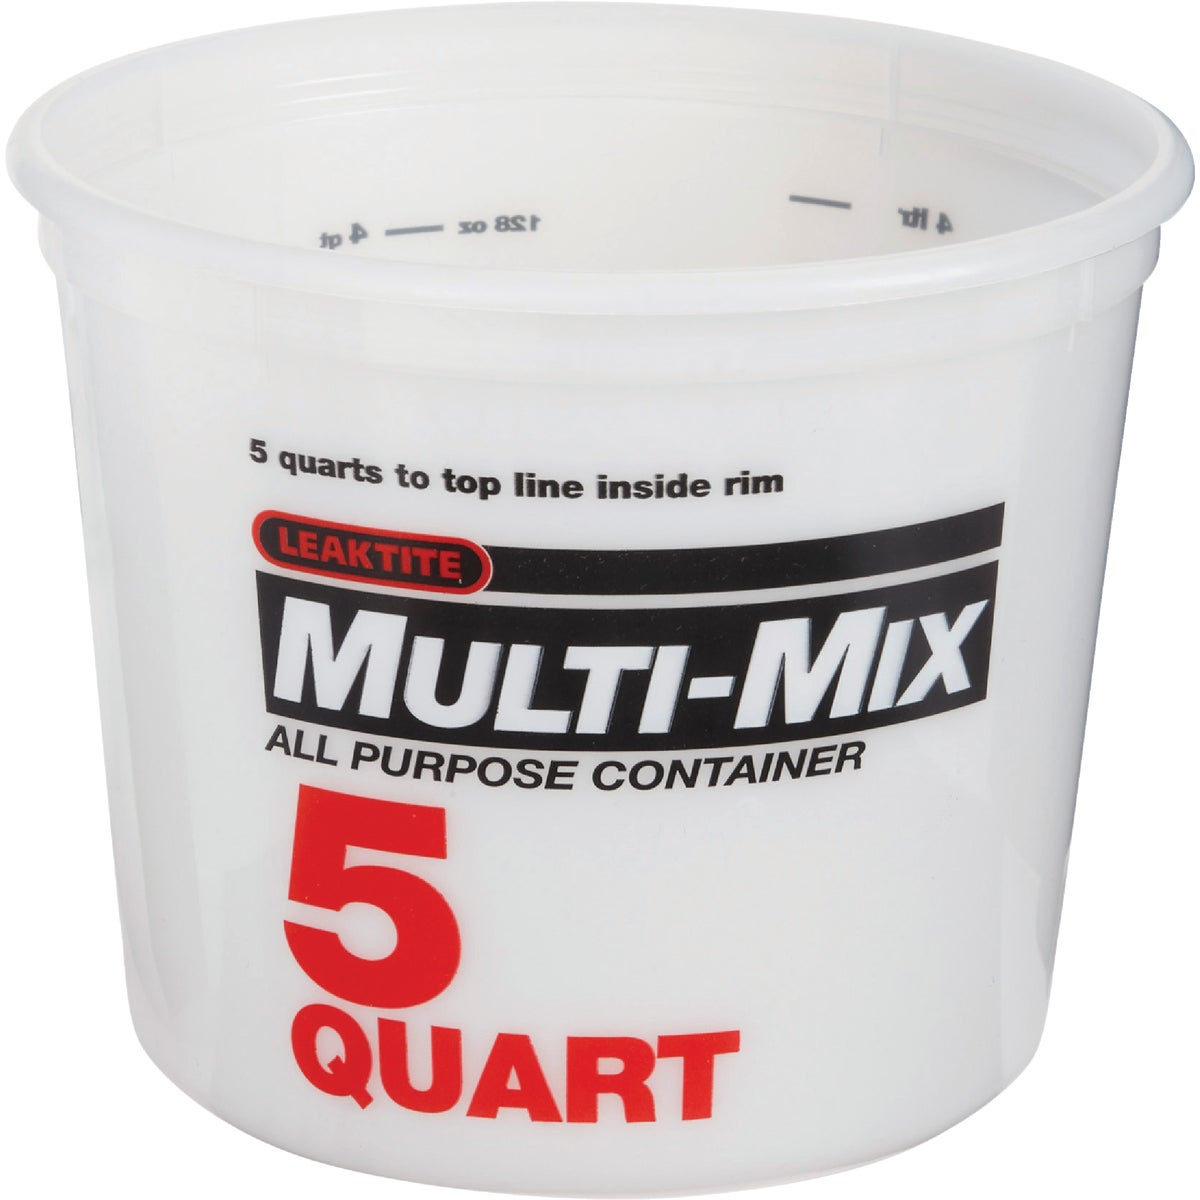 5QT MIXING CONTAINER